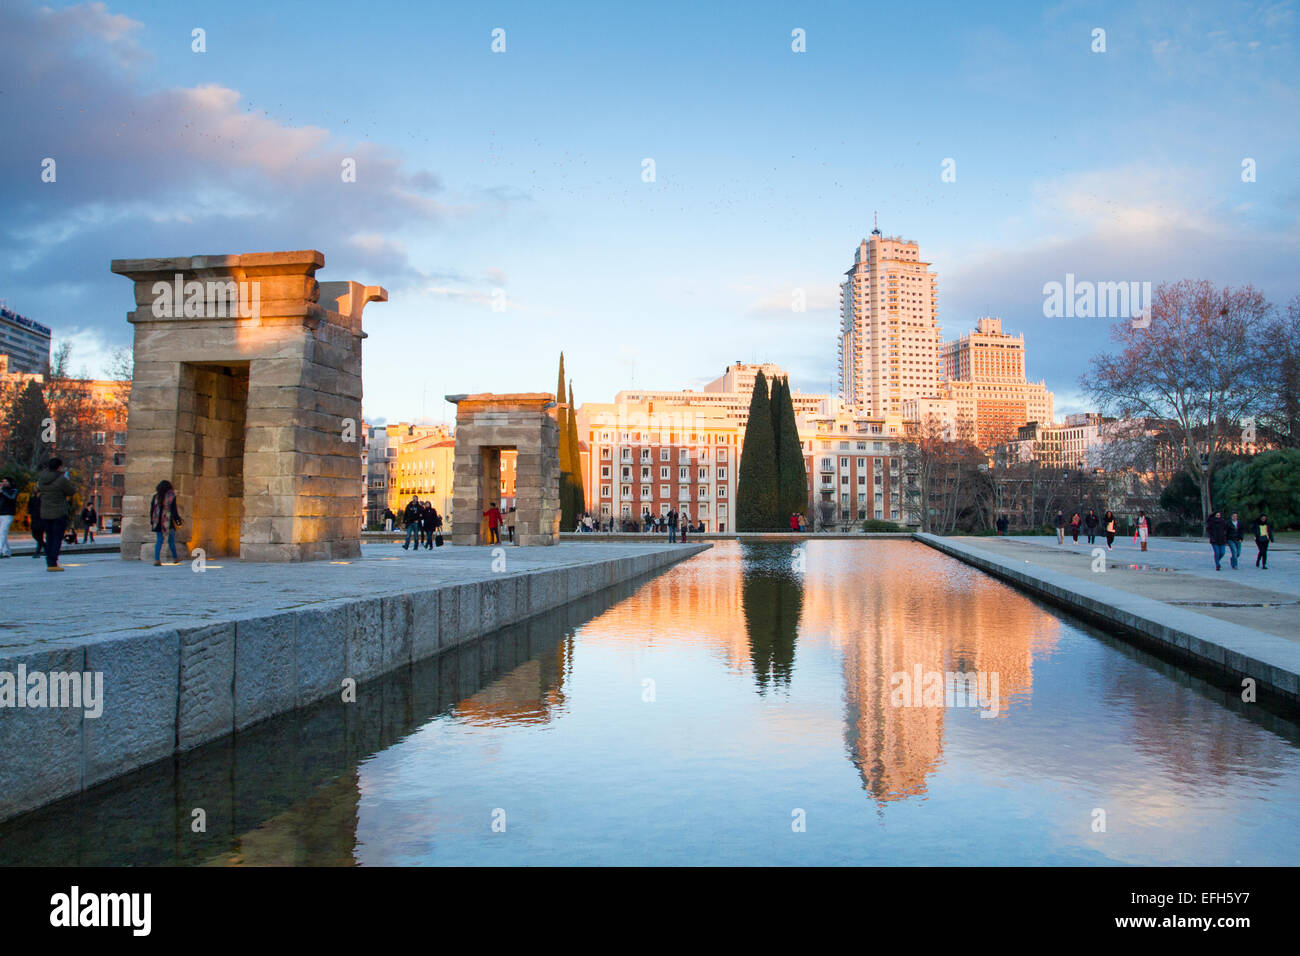 stock photo sunset in templo de debod with madrid tower known as torre de madrid and spain building edificio espaa at the back